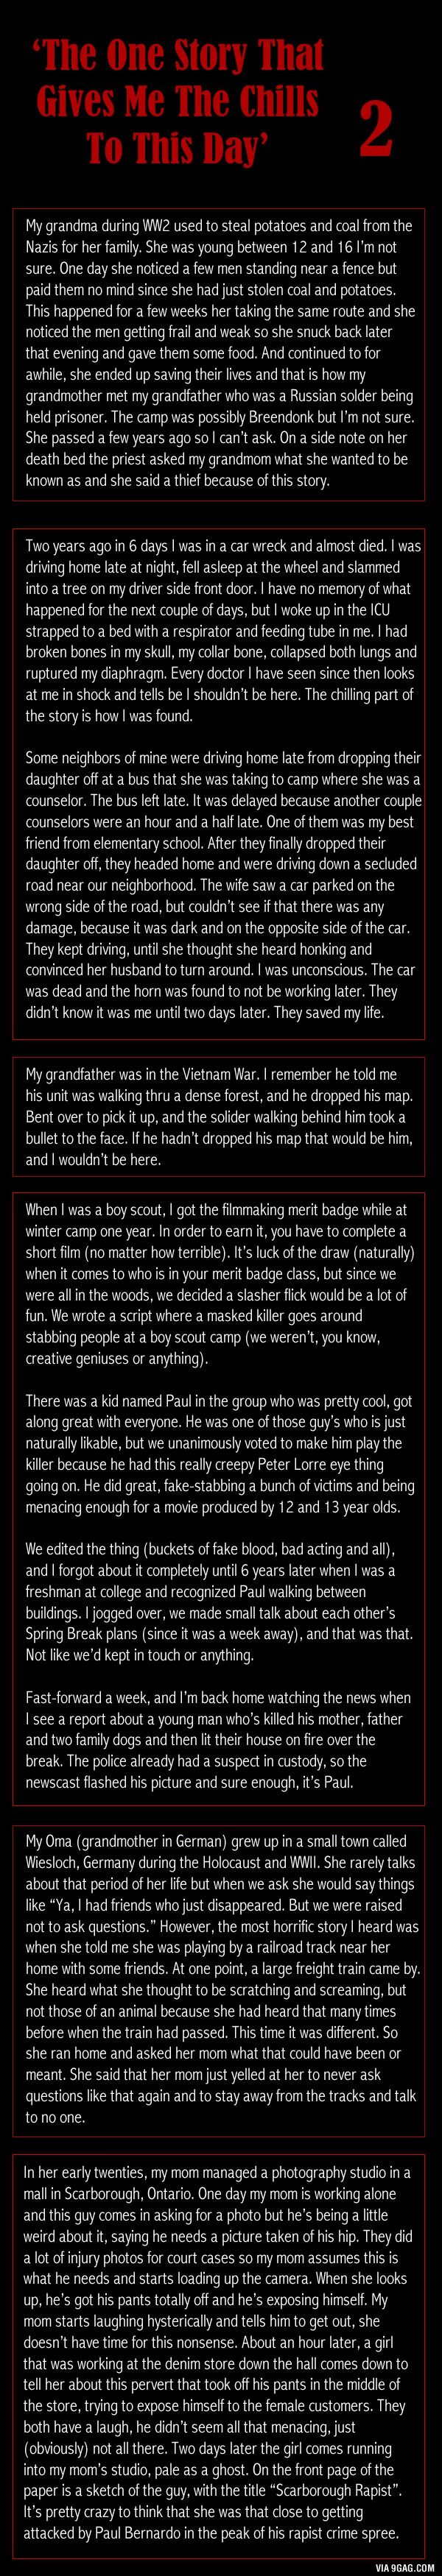 best ideas about funny scary stories scary the one story that gives me the chills to this day 2